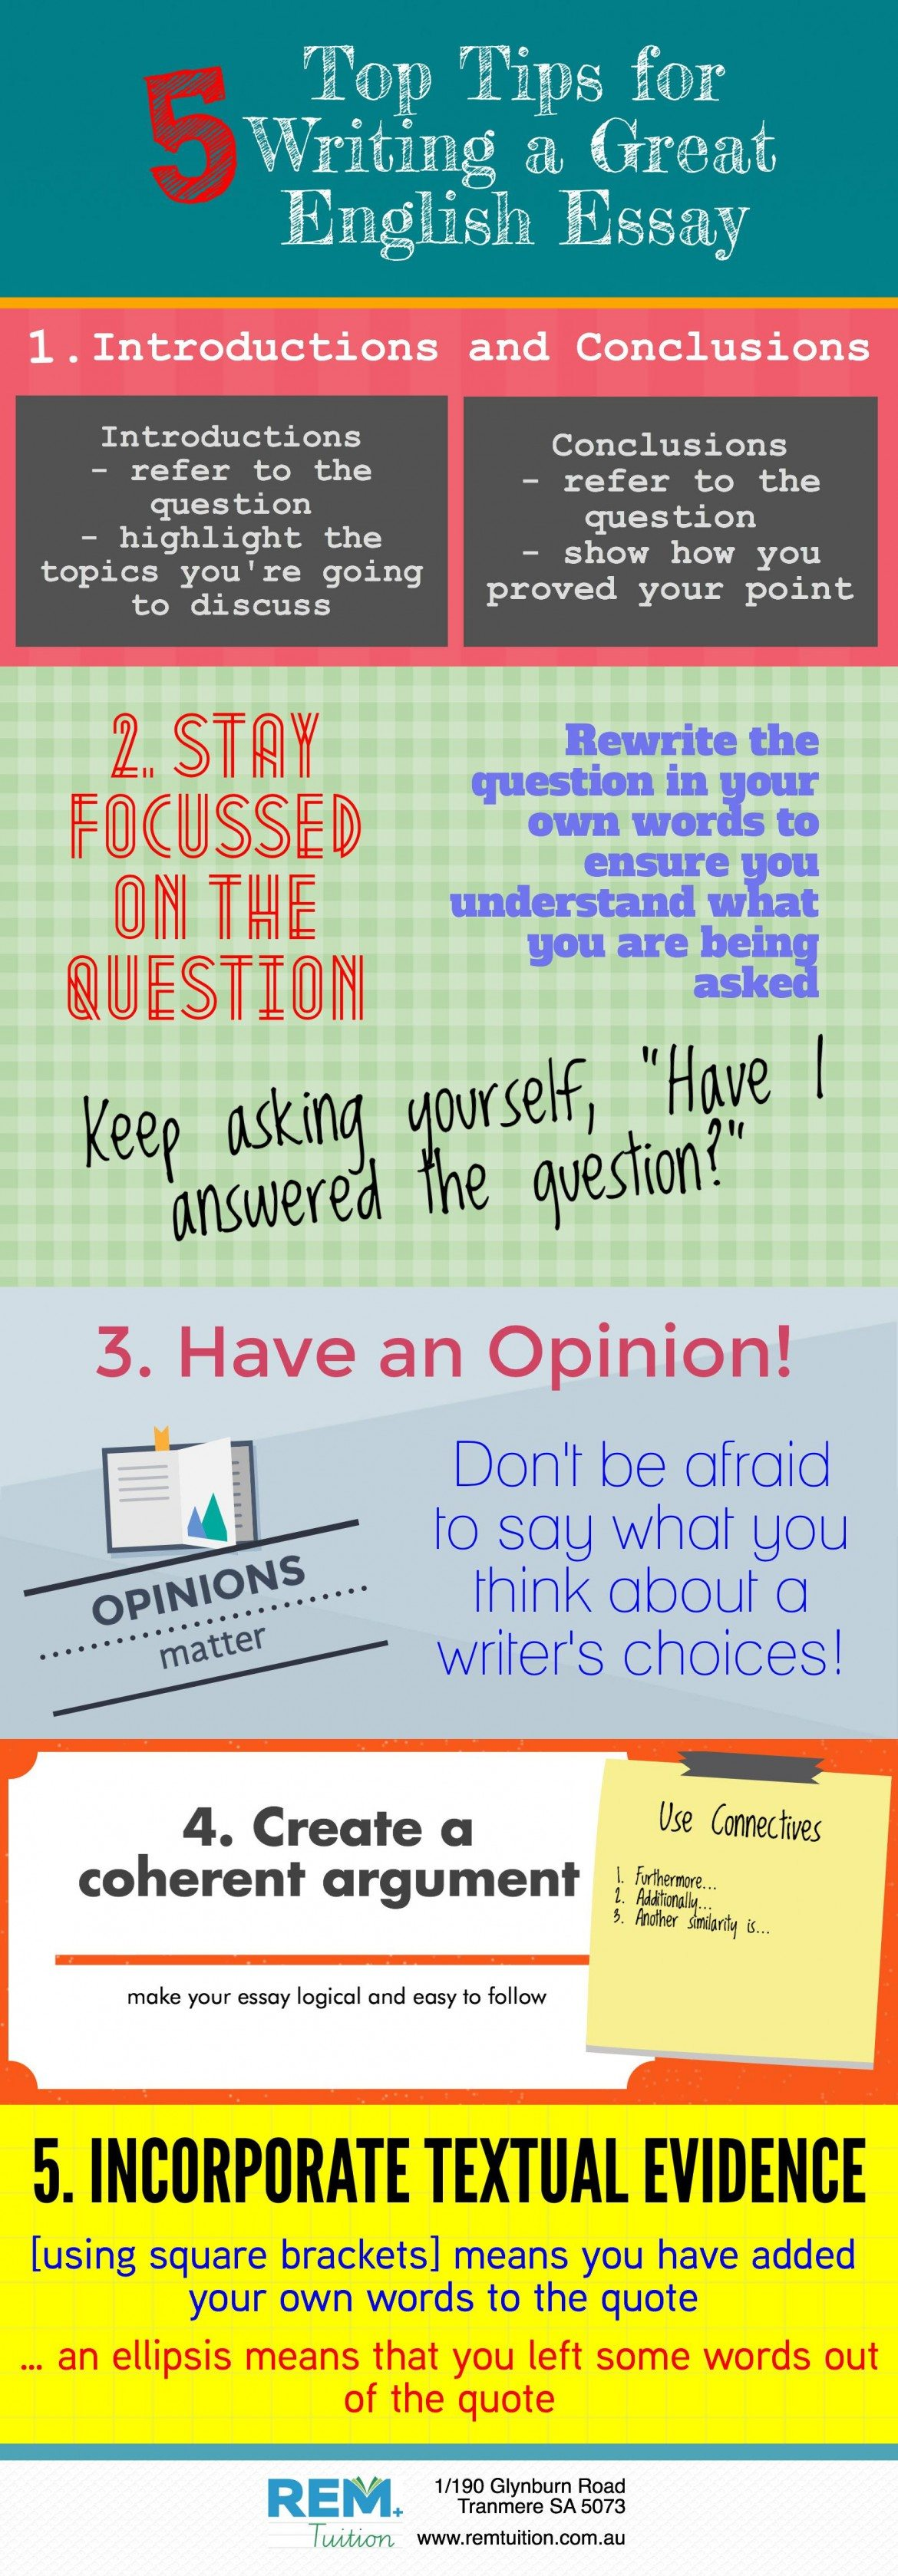 Essay Writing Tips for English